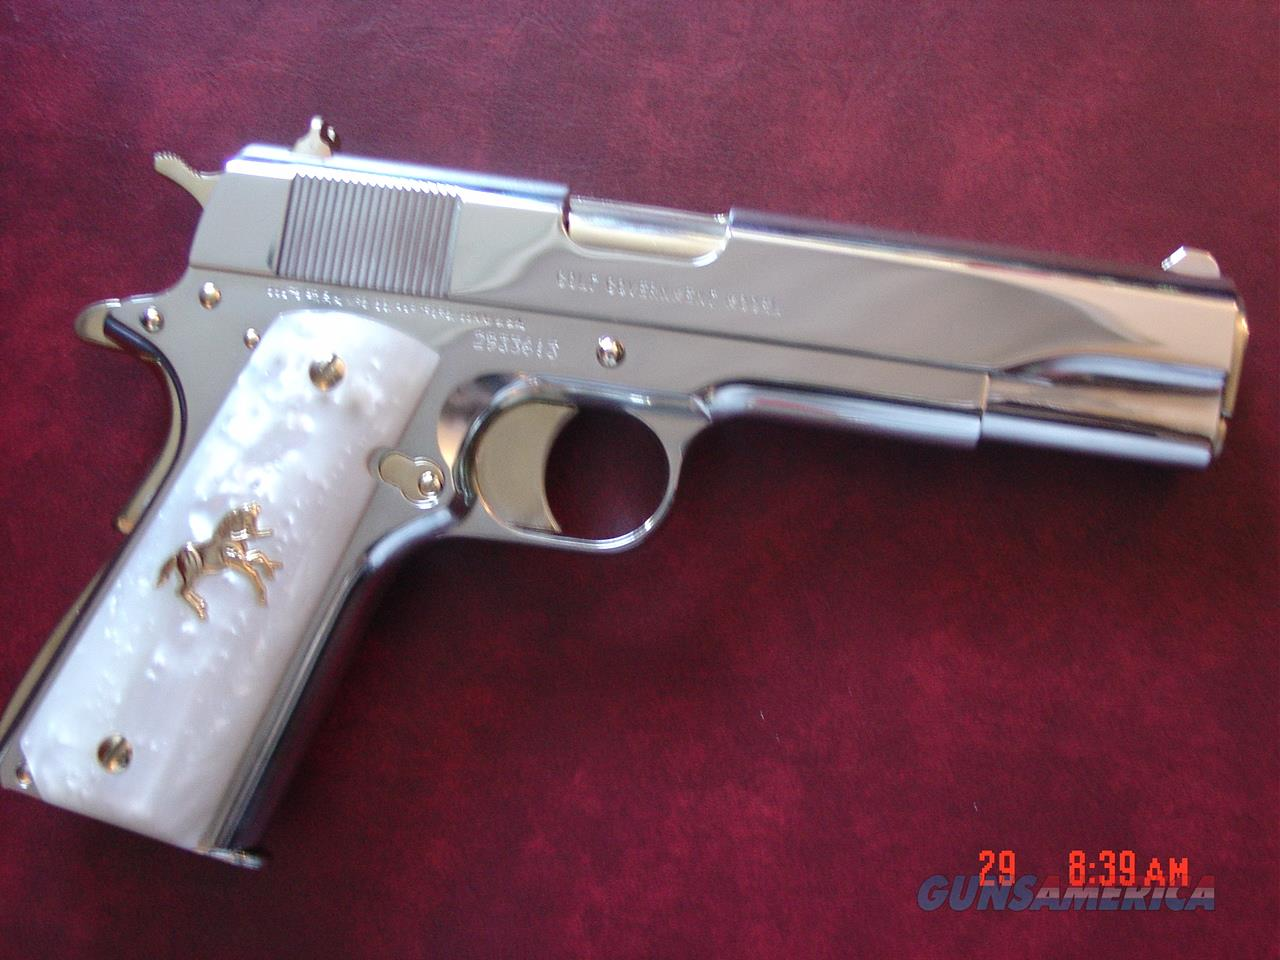 Colt Government 1911,38 Super,fully refinished in bright nickel with 24k gold accents, 2 magazines,pearlite grips,never fired,real showpiece  Guns > Pistols > Colt Automatic Pistols (1911 & Var)